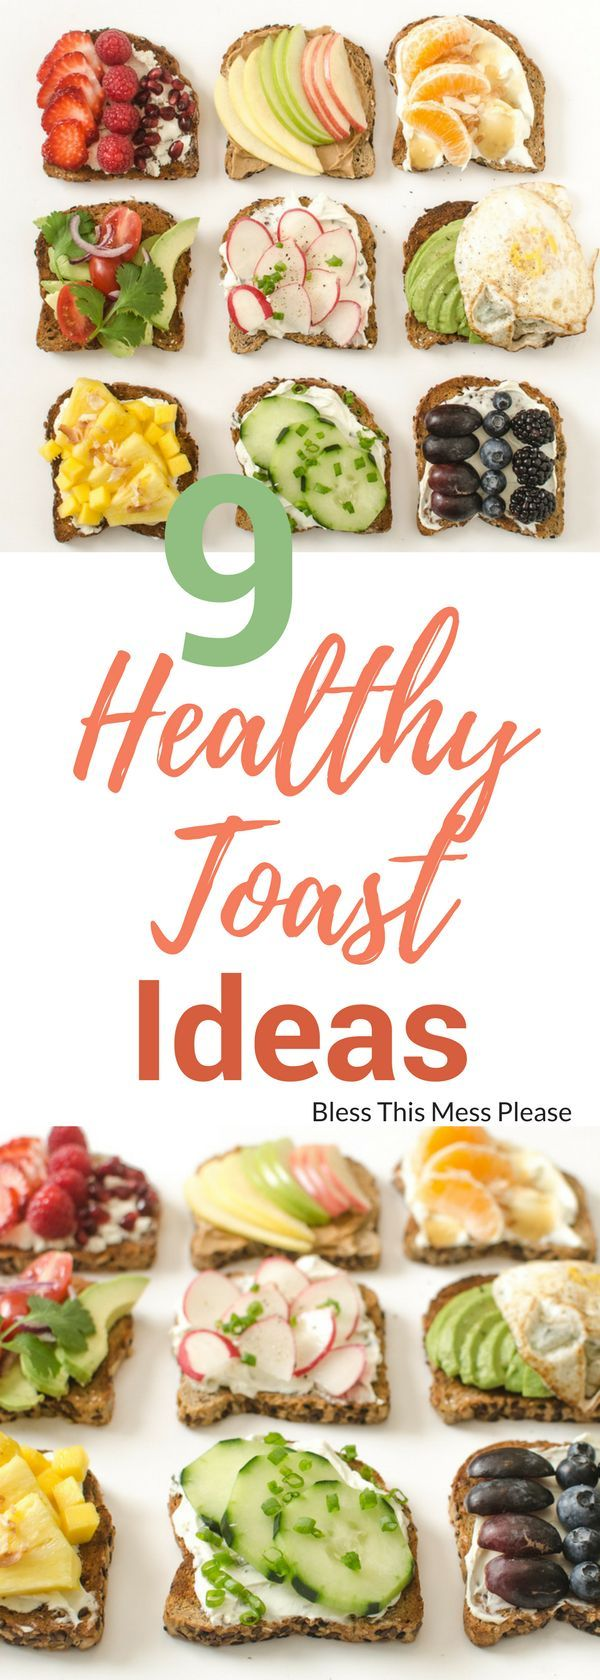 9 Healthy Toast Ideas ~ 9 sweet and savory healthy toast ideas that are simple, colorful, and filling enough to make into a meal! Which one will you try first?